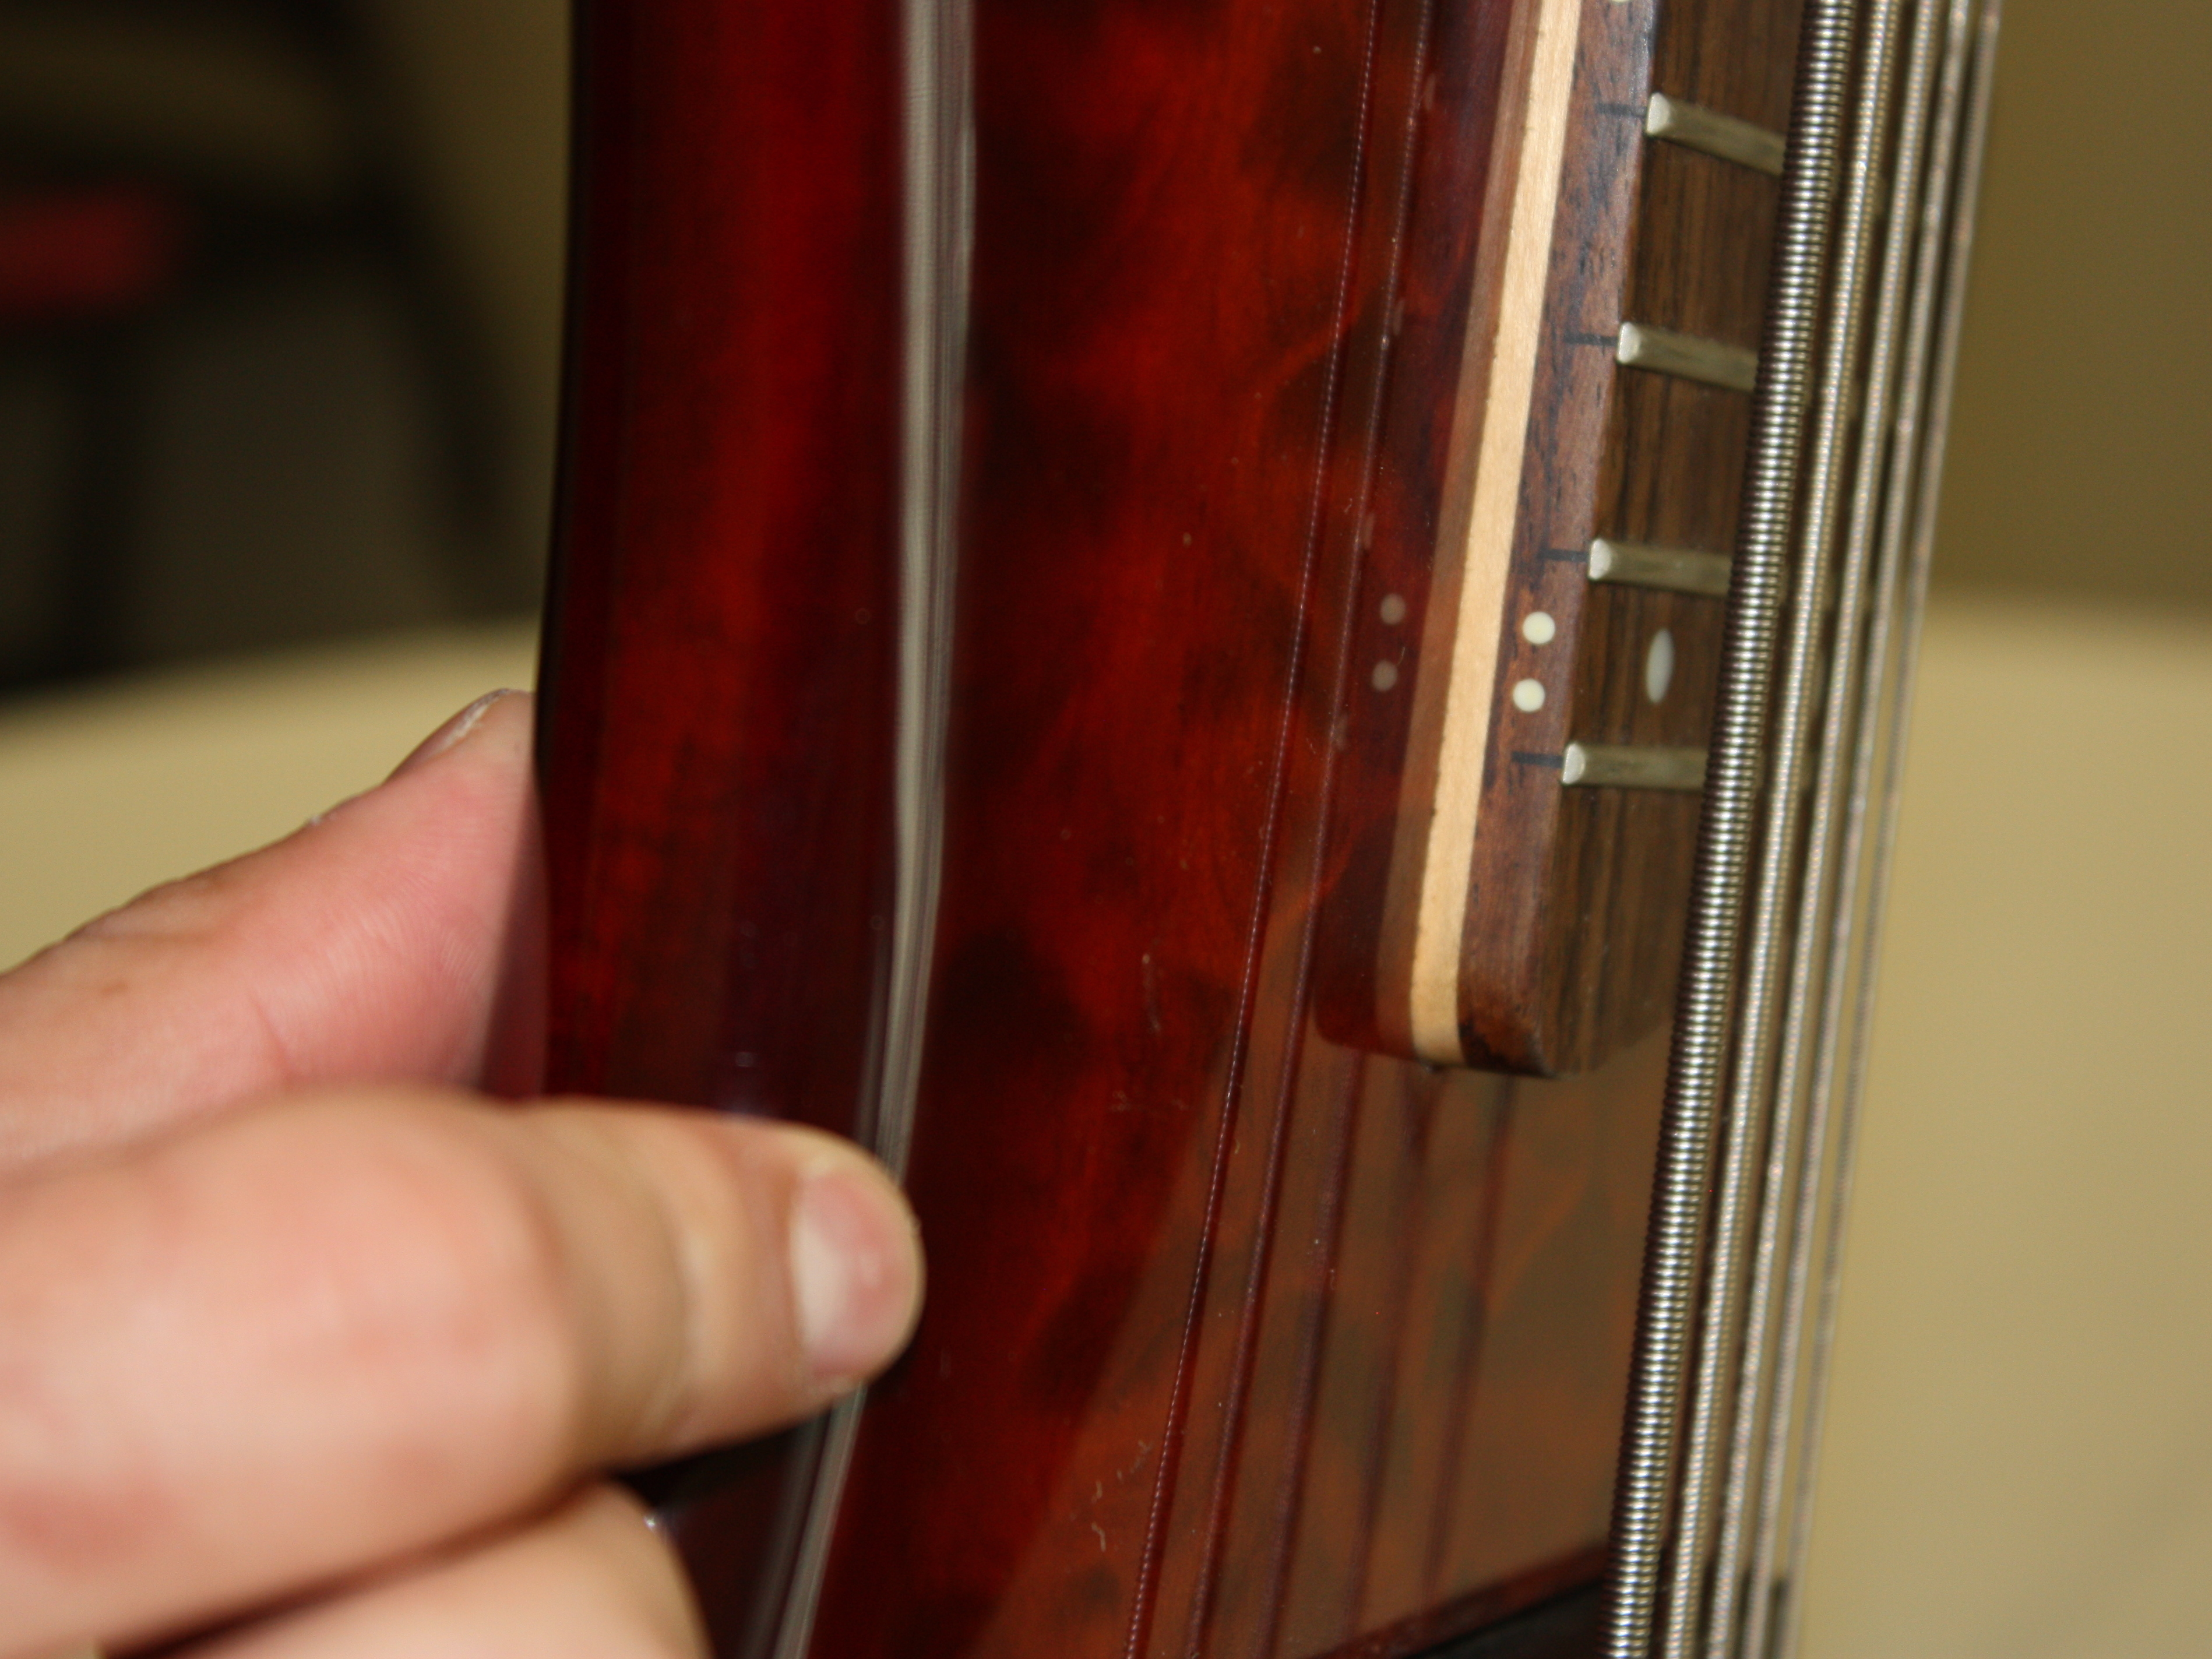 Ibanez 5 String Bass Model Sr405qm Repair Ifixit Input Jack Wiring Adjust The Action Height On